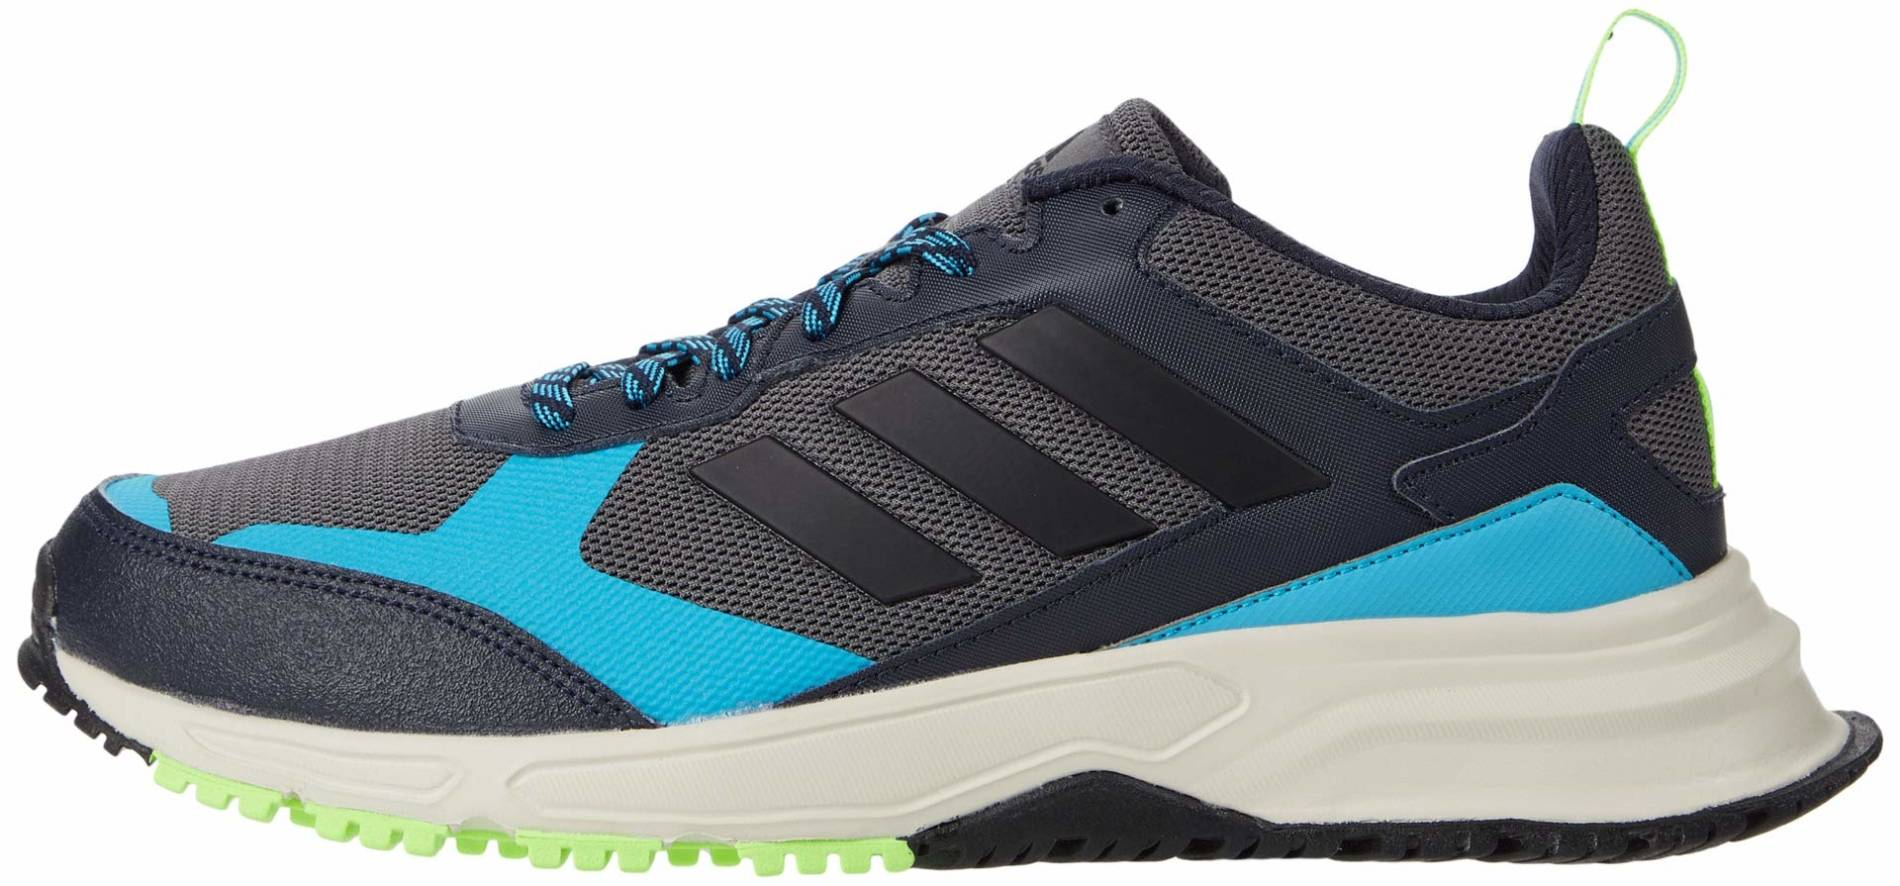 Save 55 On Adidas Minimalist Running Shoes 27 Models In Stock Runrepeat